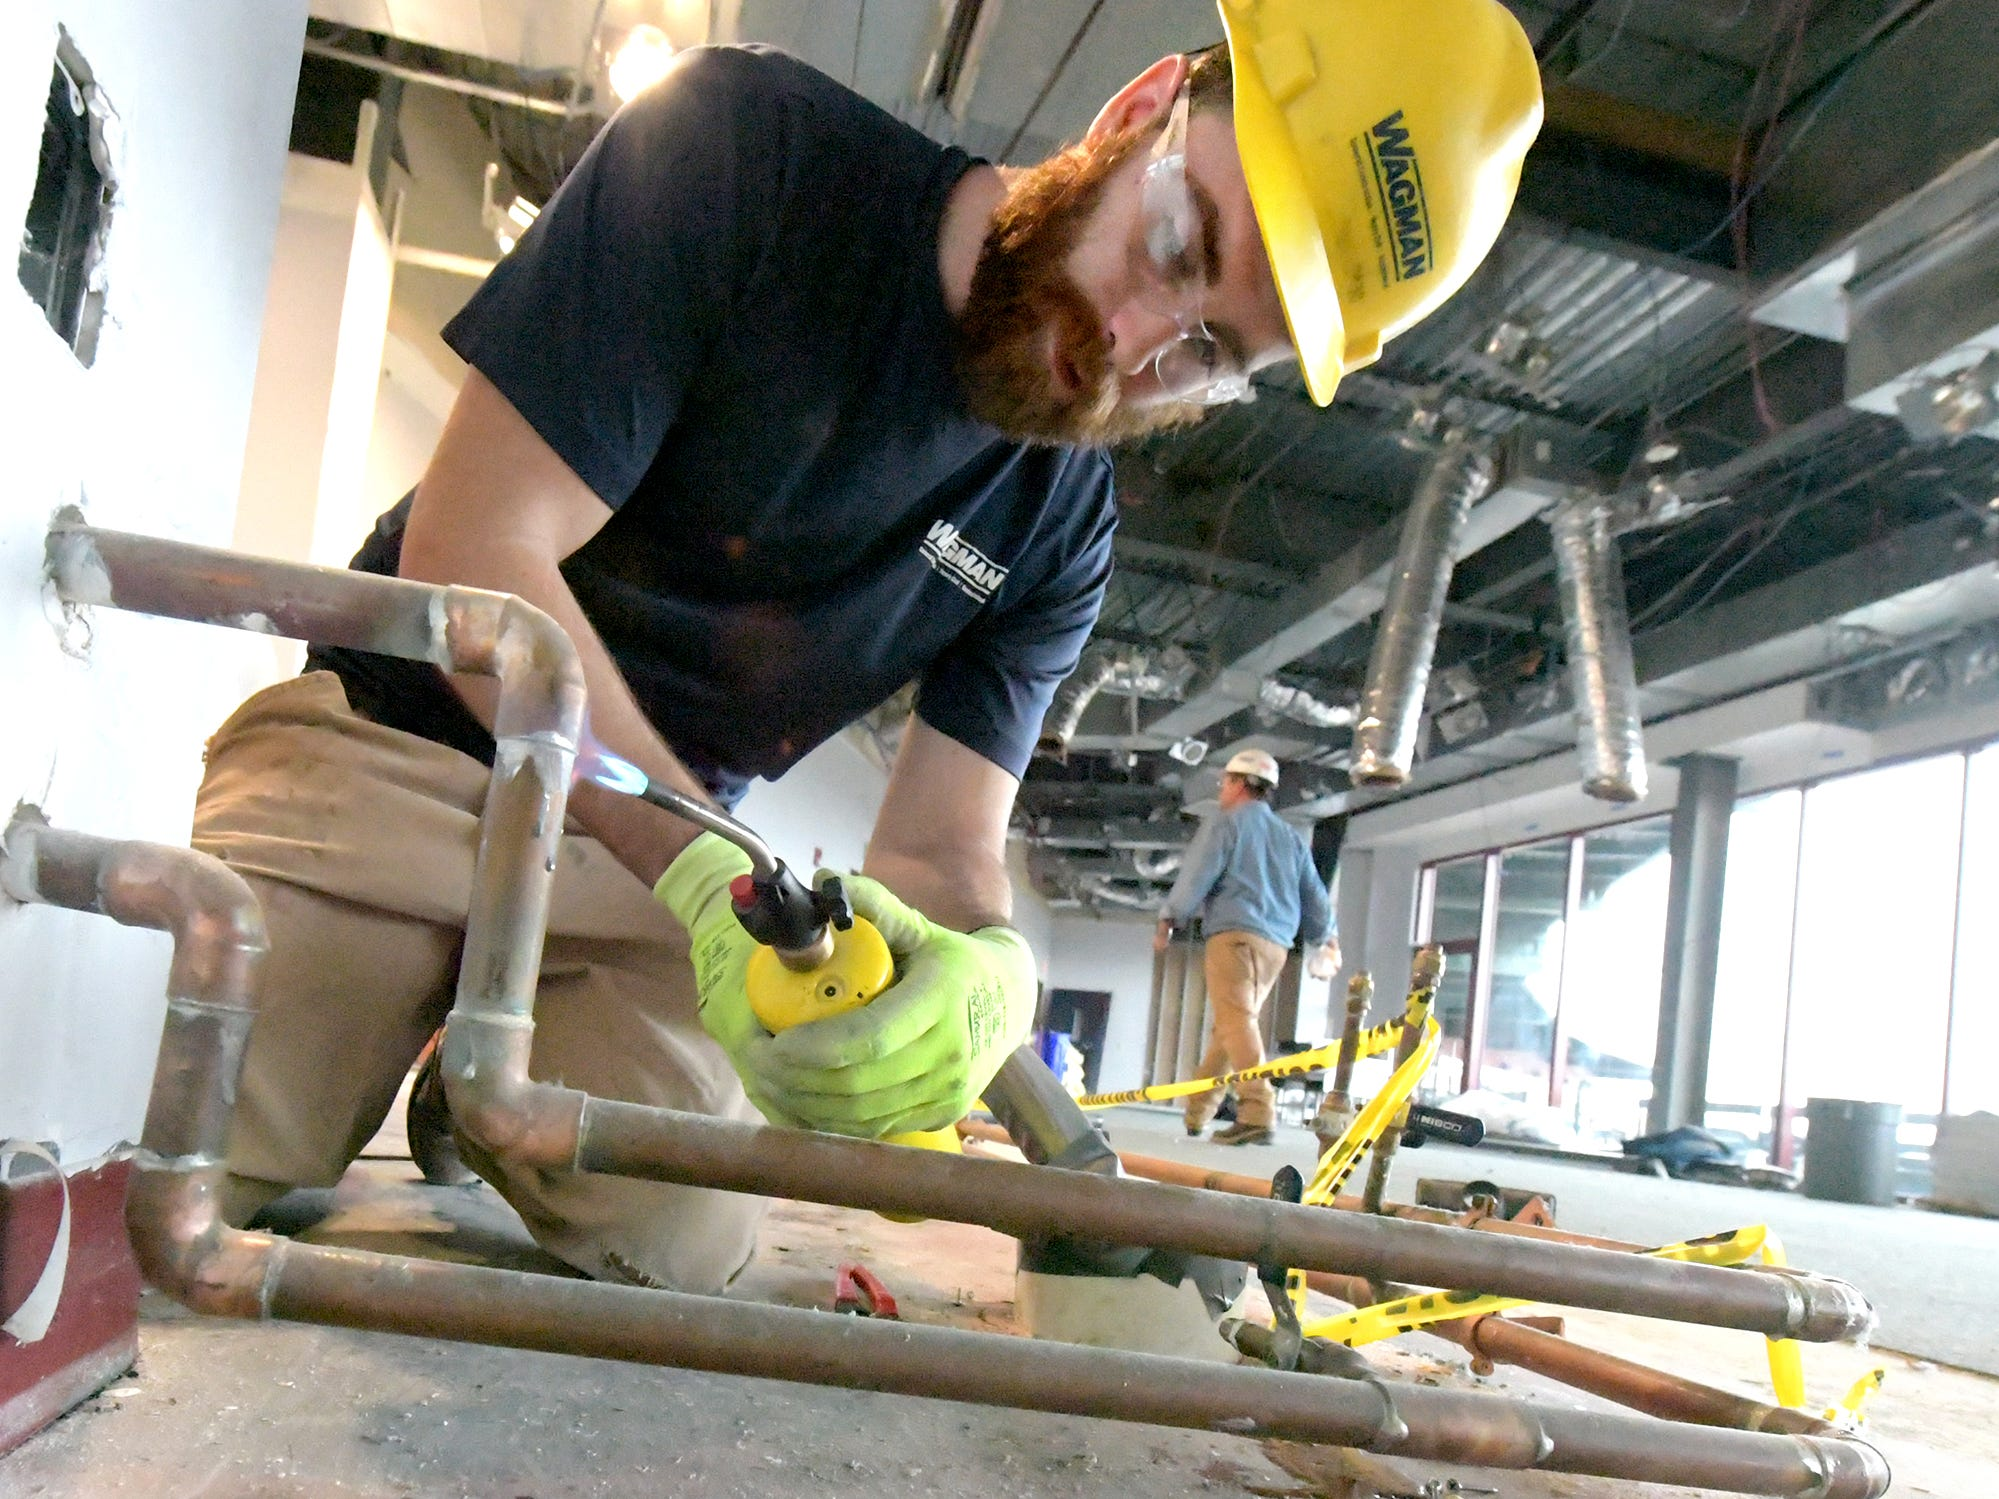 Brandon Girard of Wagman Construction uses a torch to loosen copper water pipe while removing it in the former White Rose Room at PeoplesBank Park Friday, Nov. 9, 2018. The room in being transformed to house the 1741 Club, an all-inclusive dining and drink pass for corporate rental. The club will be available for the 2019 season. Bill Kalina photo